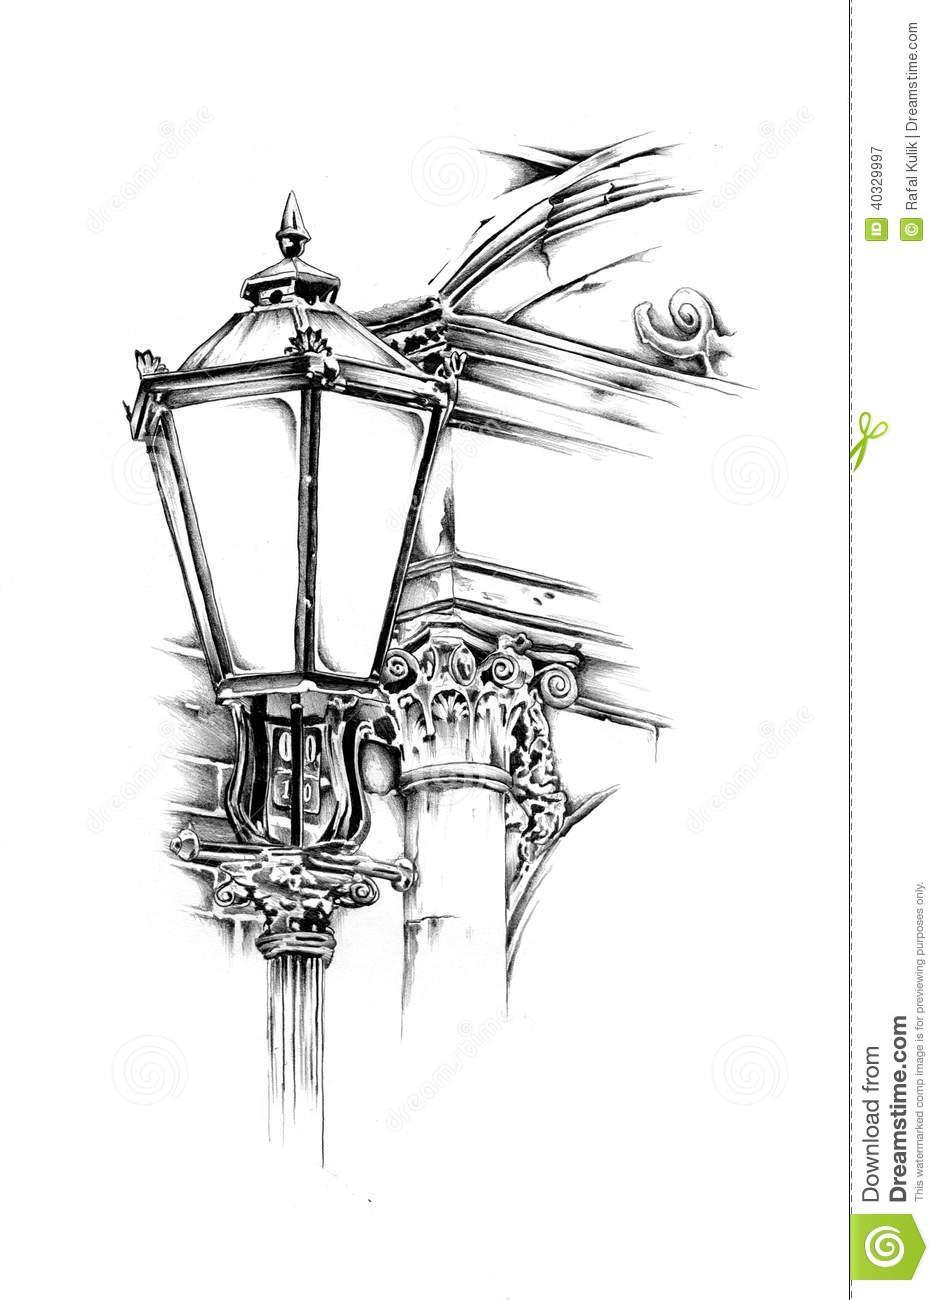 Antique Street Lantern Drawing Handmade Stock Illustration